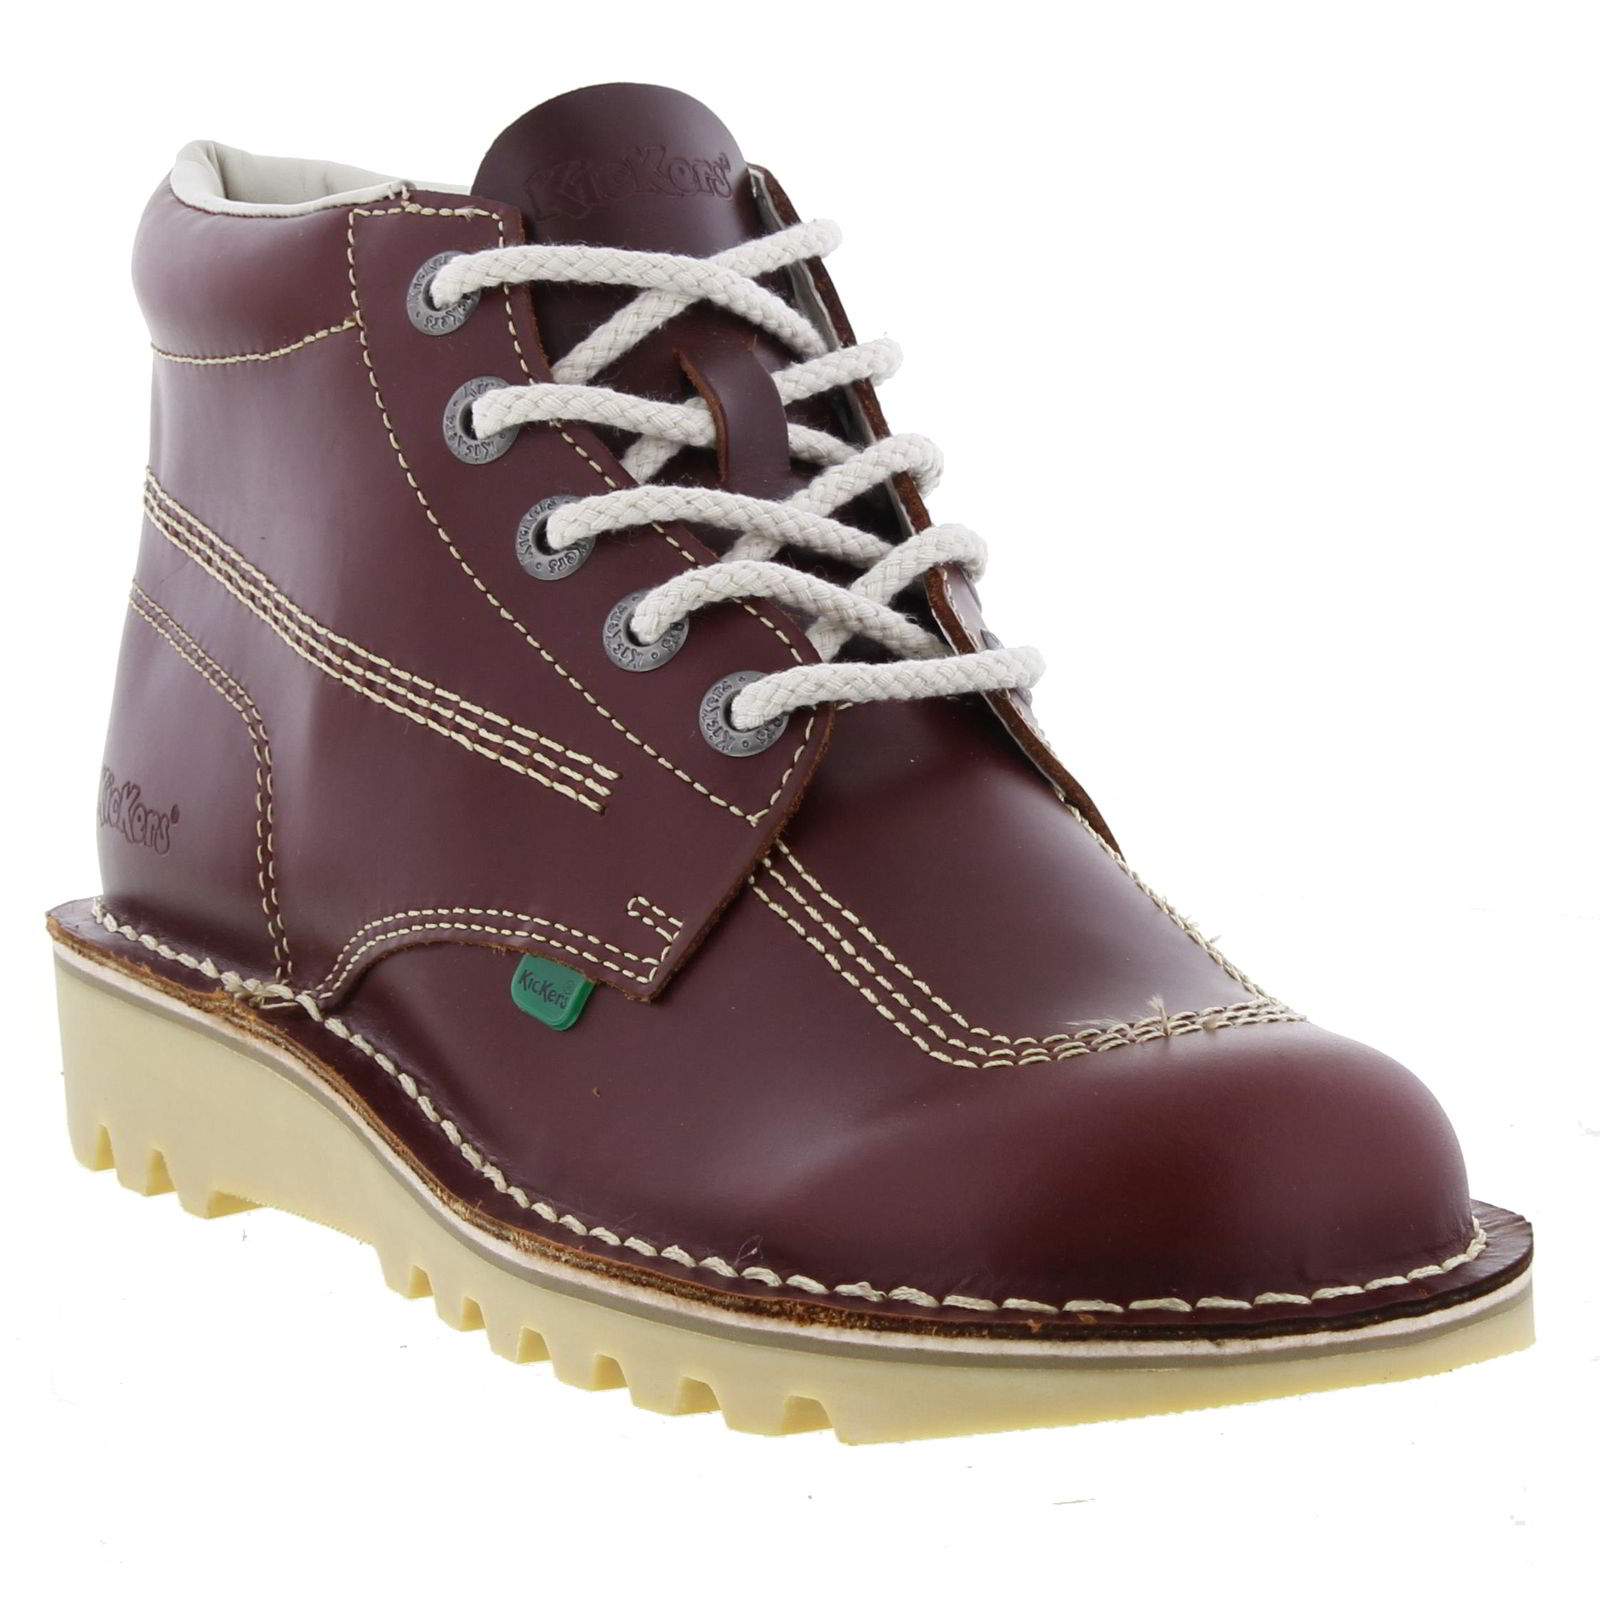 Kickers M Kick Hi Mens Red Leather Ankle Boots Size 6-11 ...